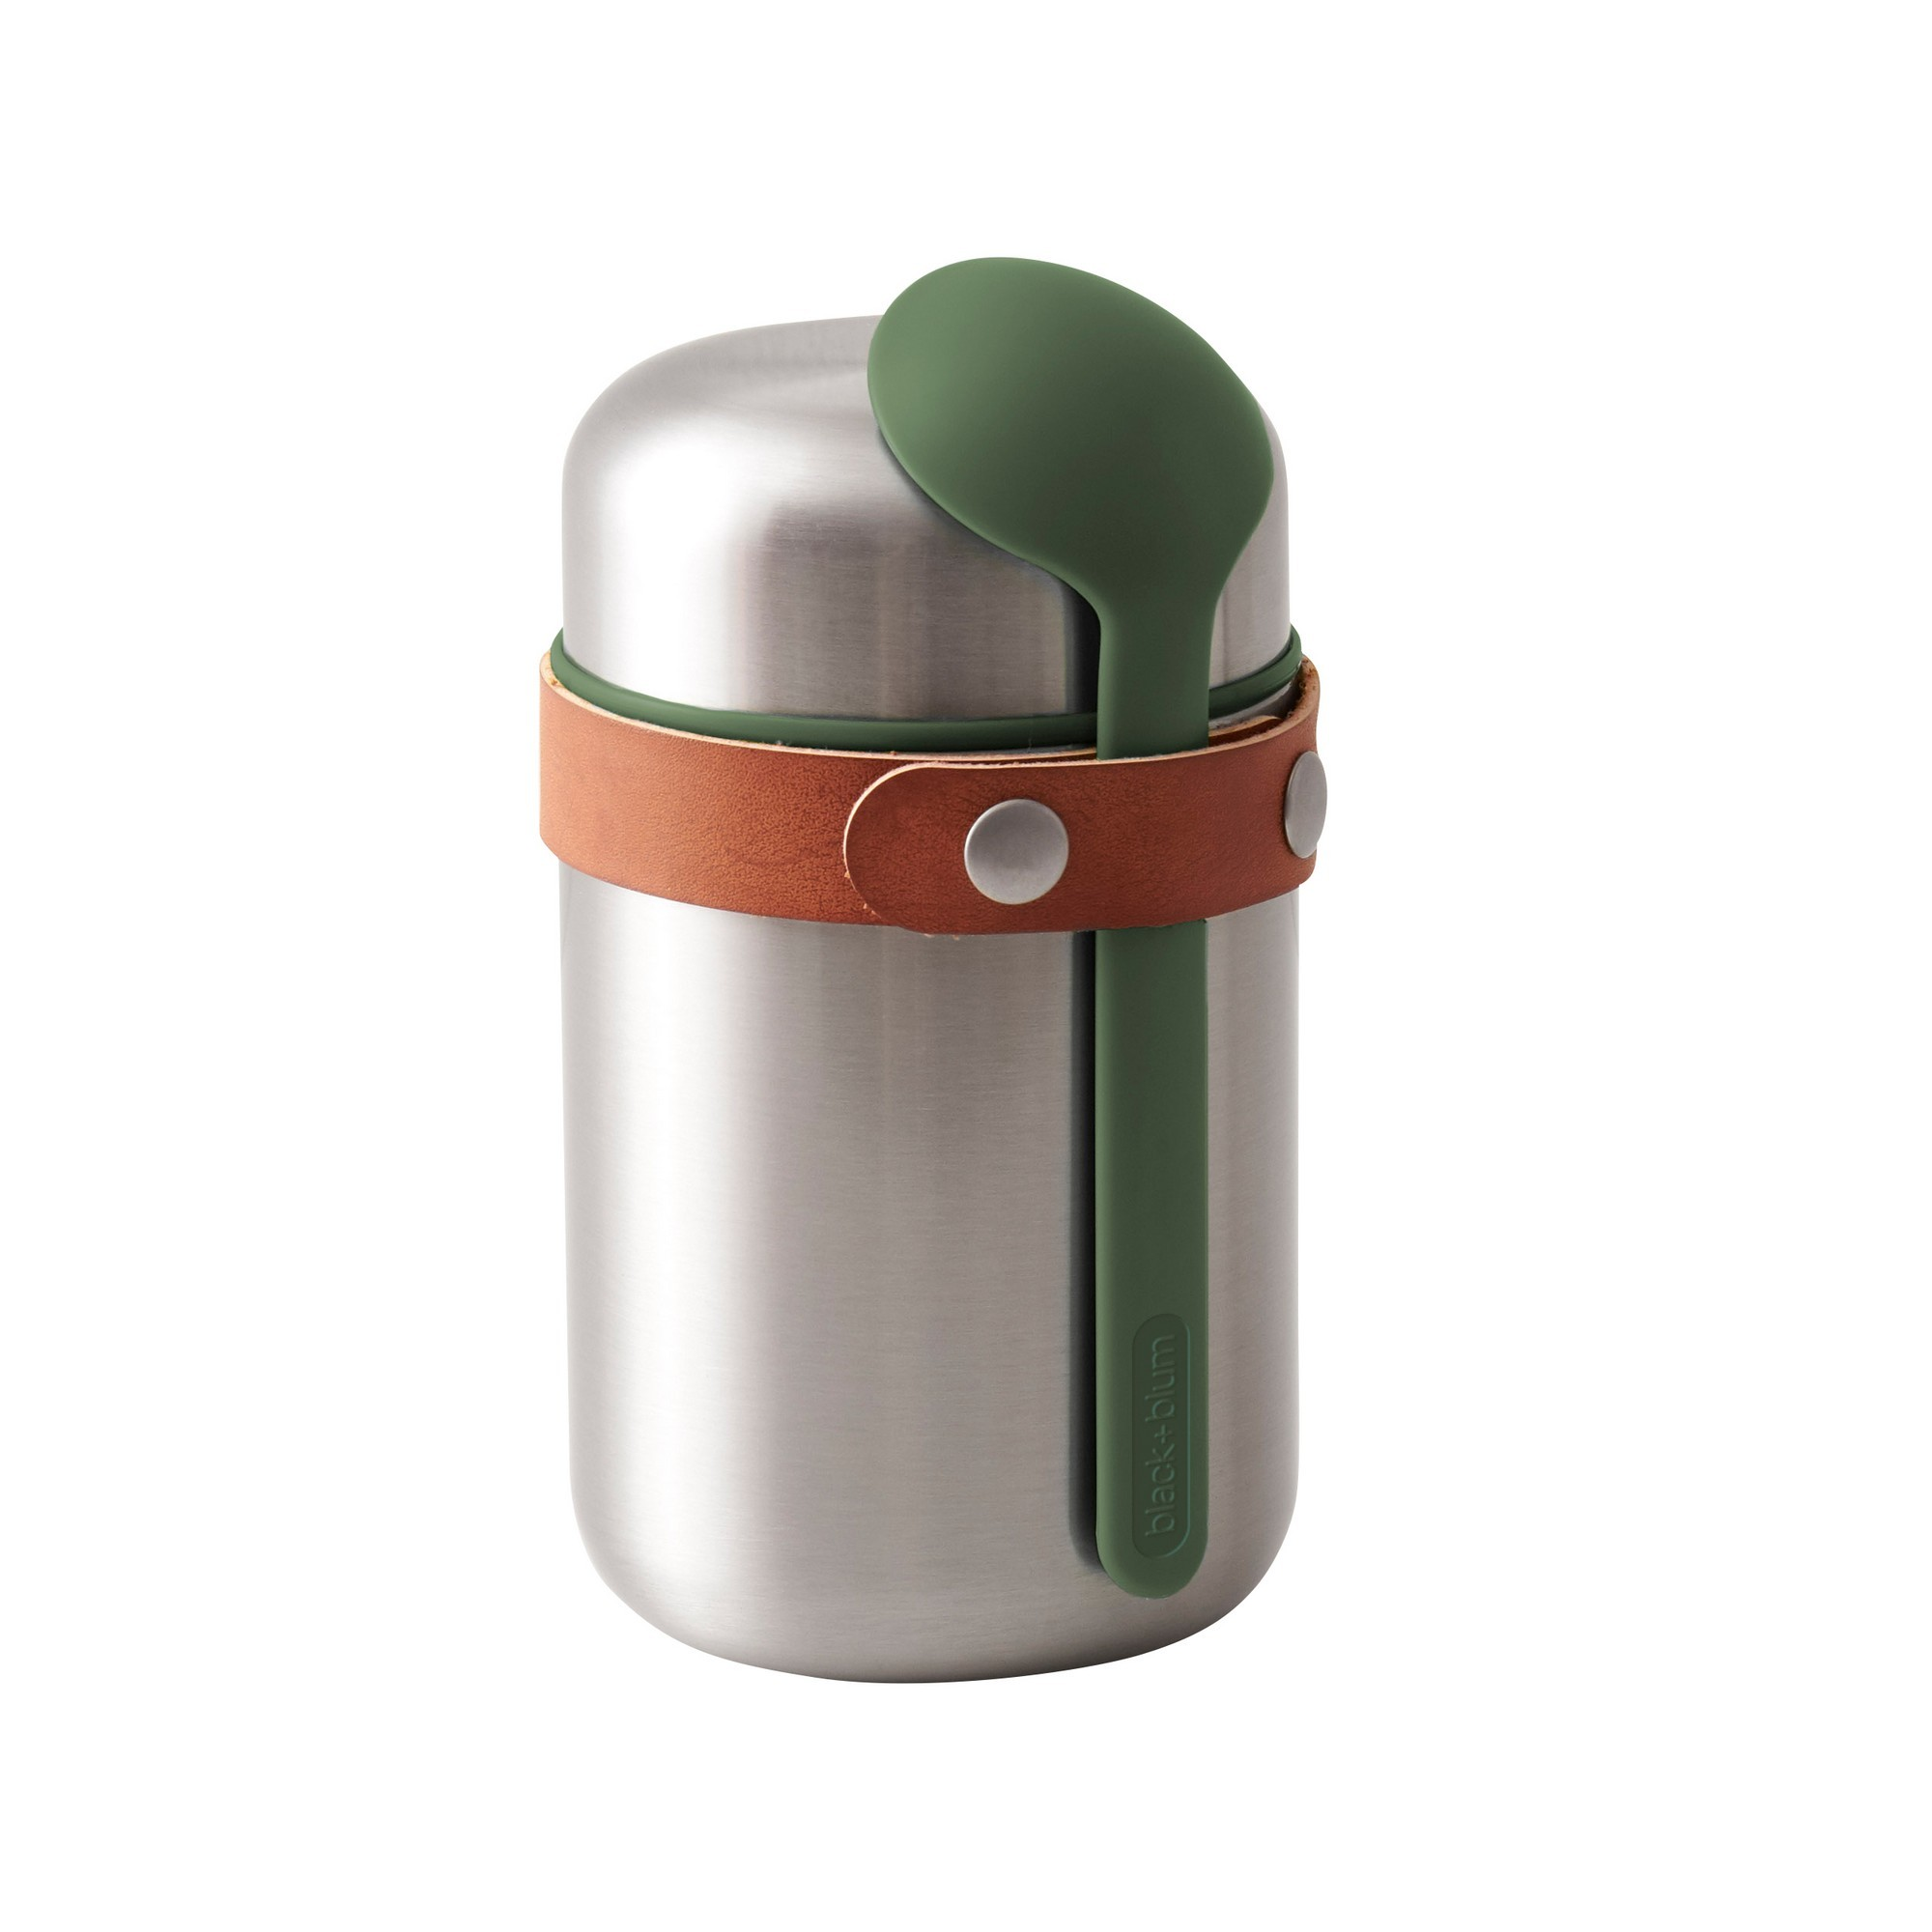 Black + Blum Stainless Steel Food Flask, 400ml, Olive